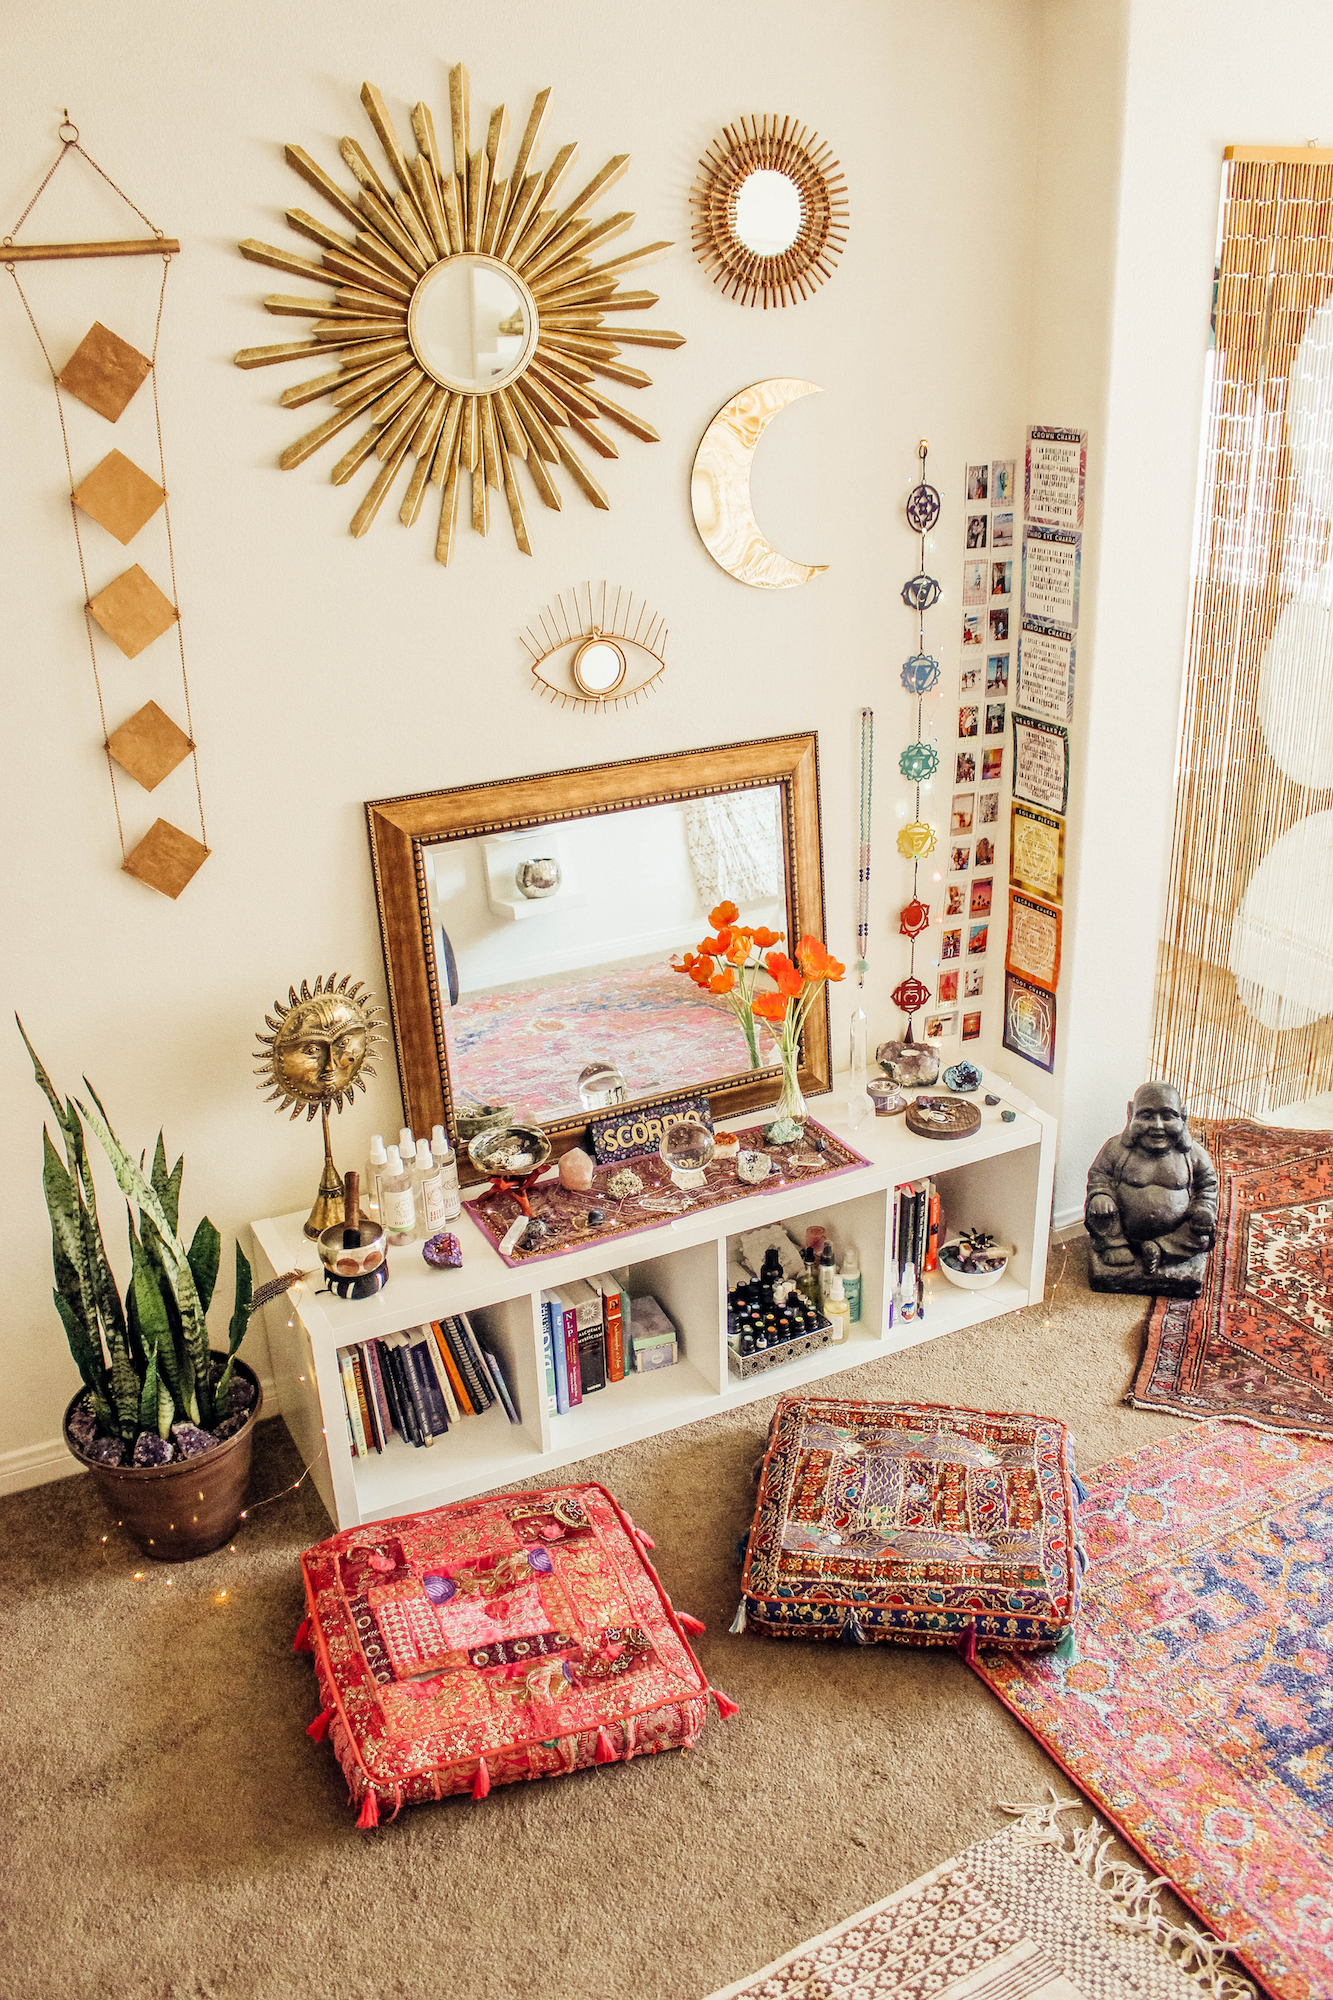 Lady Scorpio Ladyscorpioblog Com By Alexa Halladay How To Bring Beauty Into Your Home Bohemian Vi Yoga Room Design Meditation Room Decor Home Yoga Room